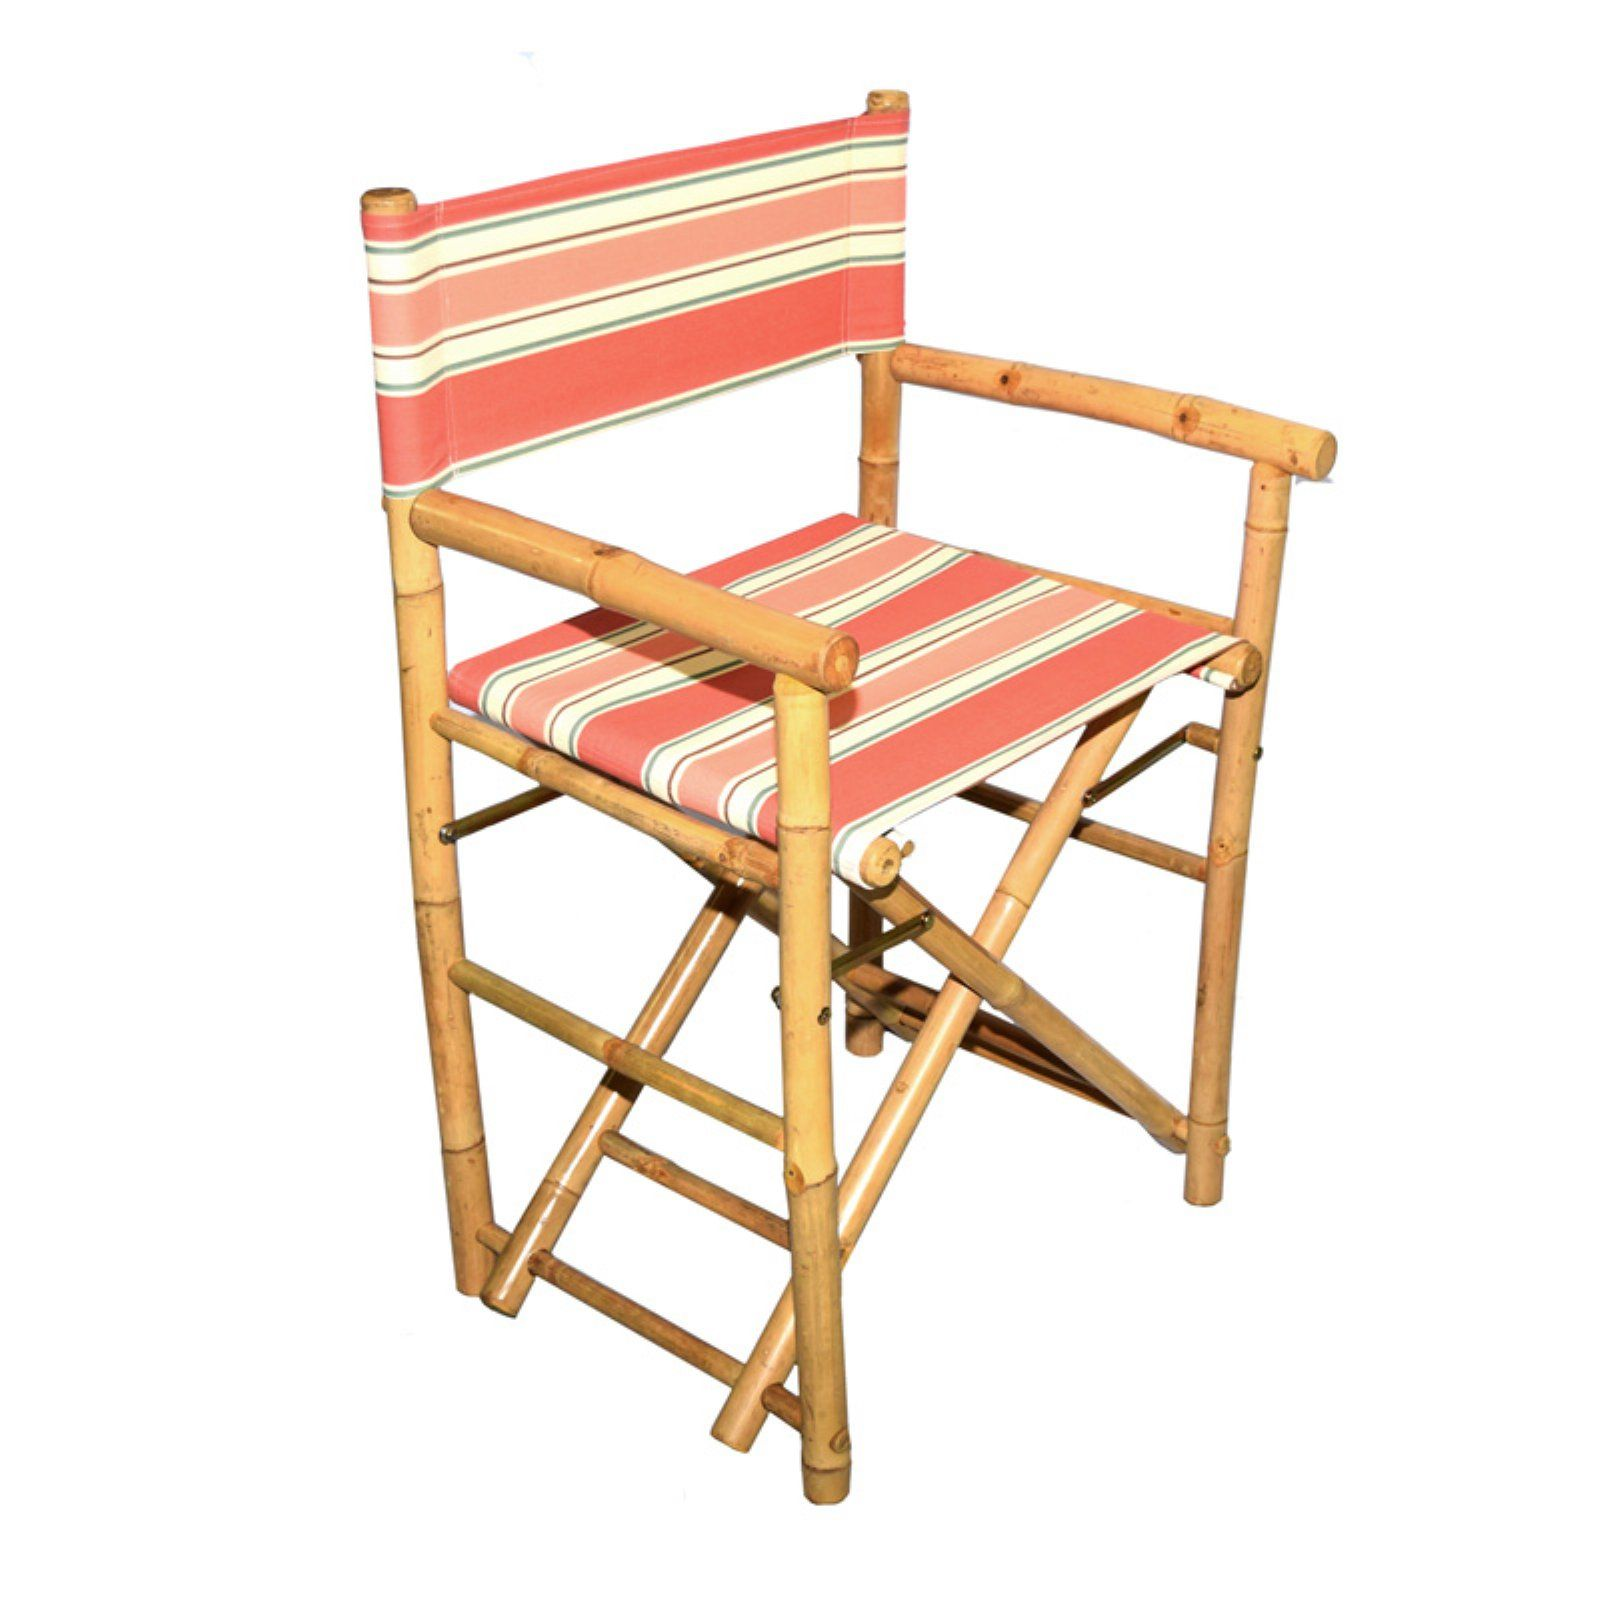 Wondrous Outdoor Bamboo54 Folding Bamboo Low Directors Chair With Caraccident5 Cool Chair Designs And Ideas Caraccident5Info